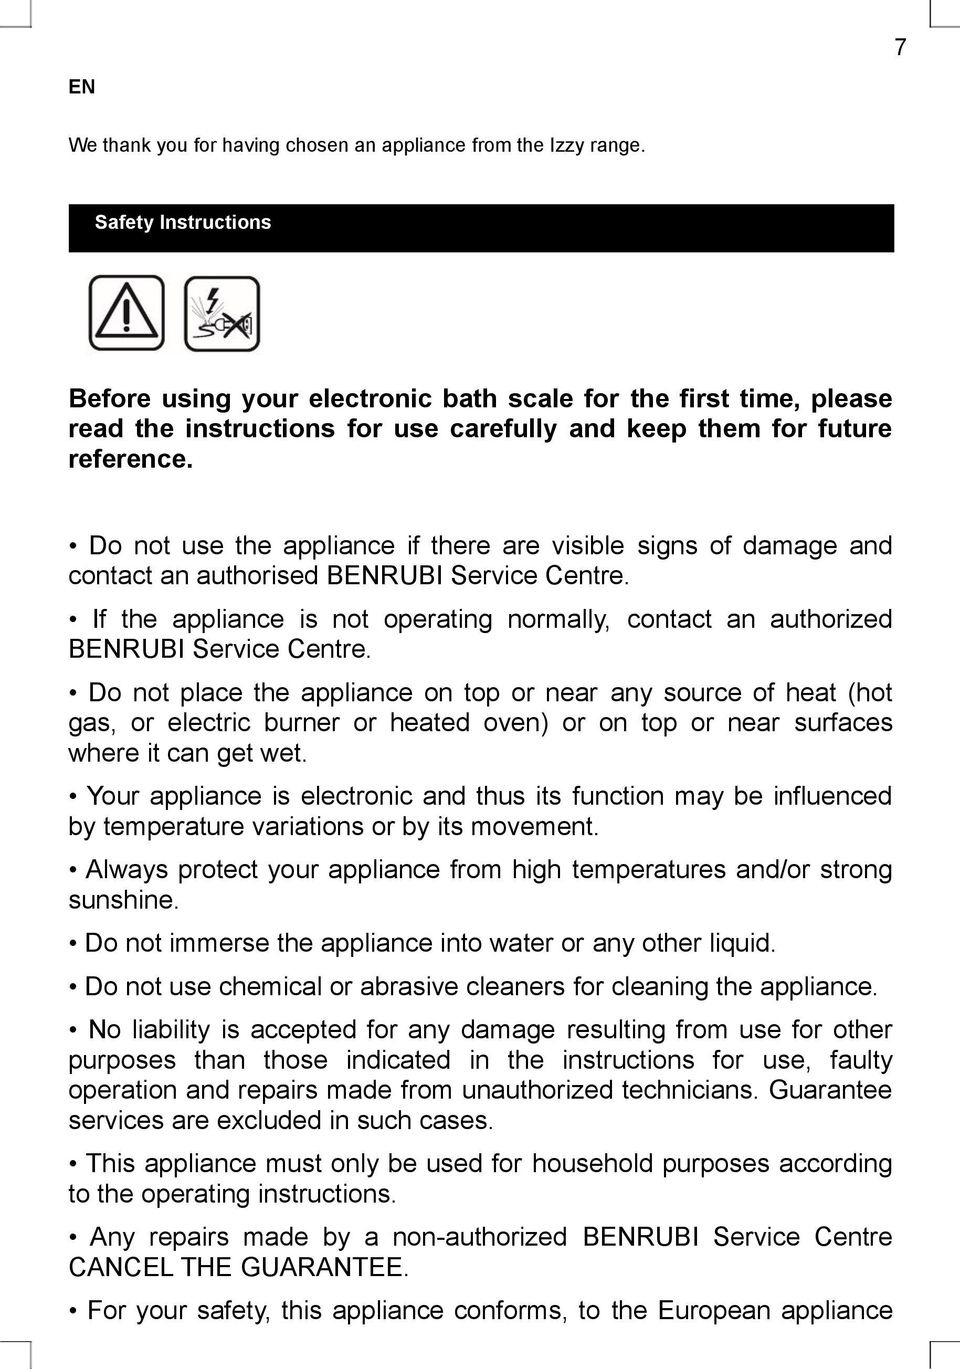 Do not use the appliance if there are visible signs of damage and contact an authorised BENRUBI Service Centre.